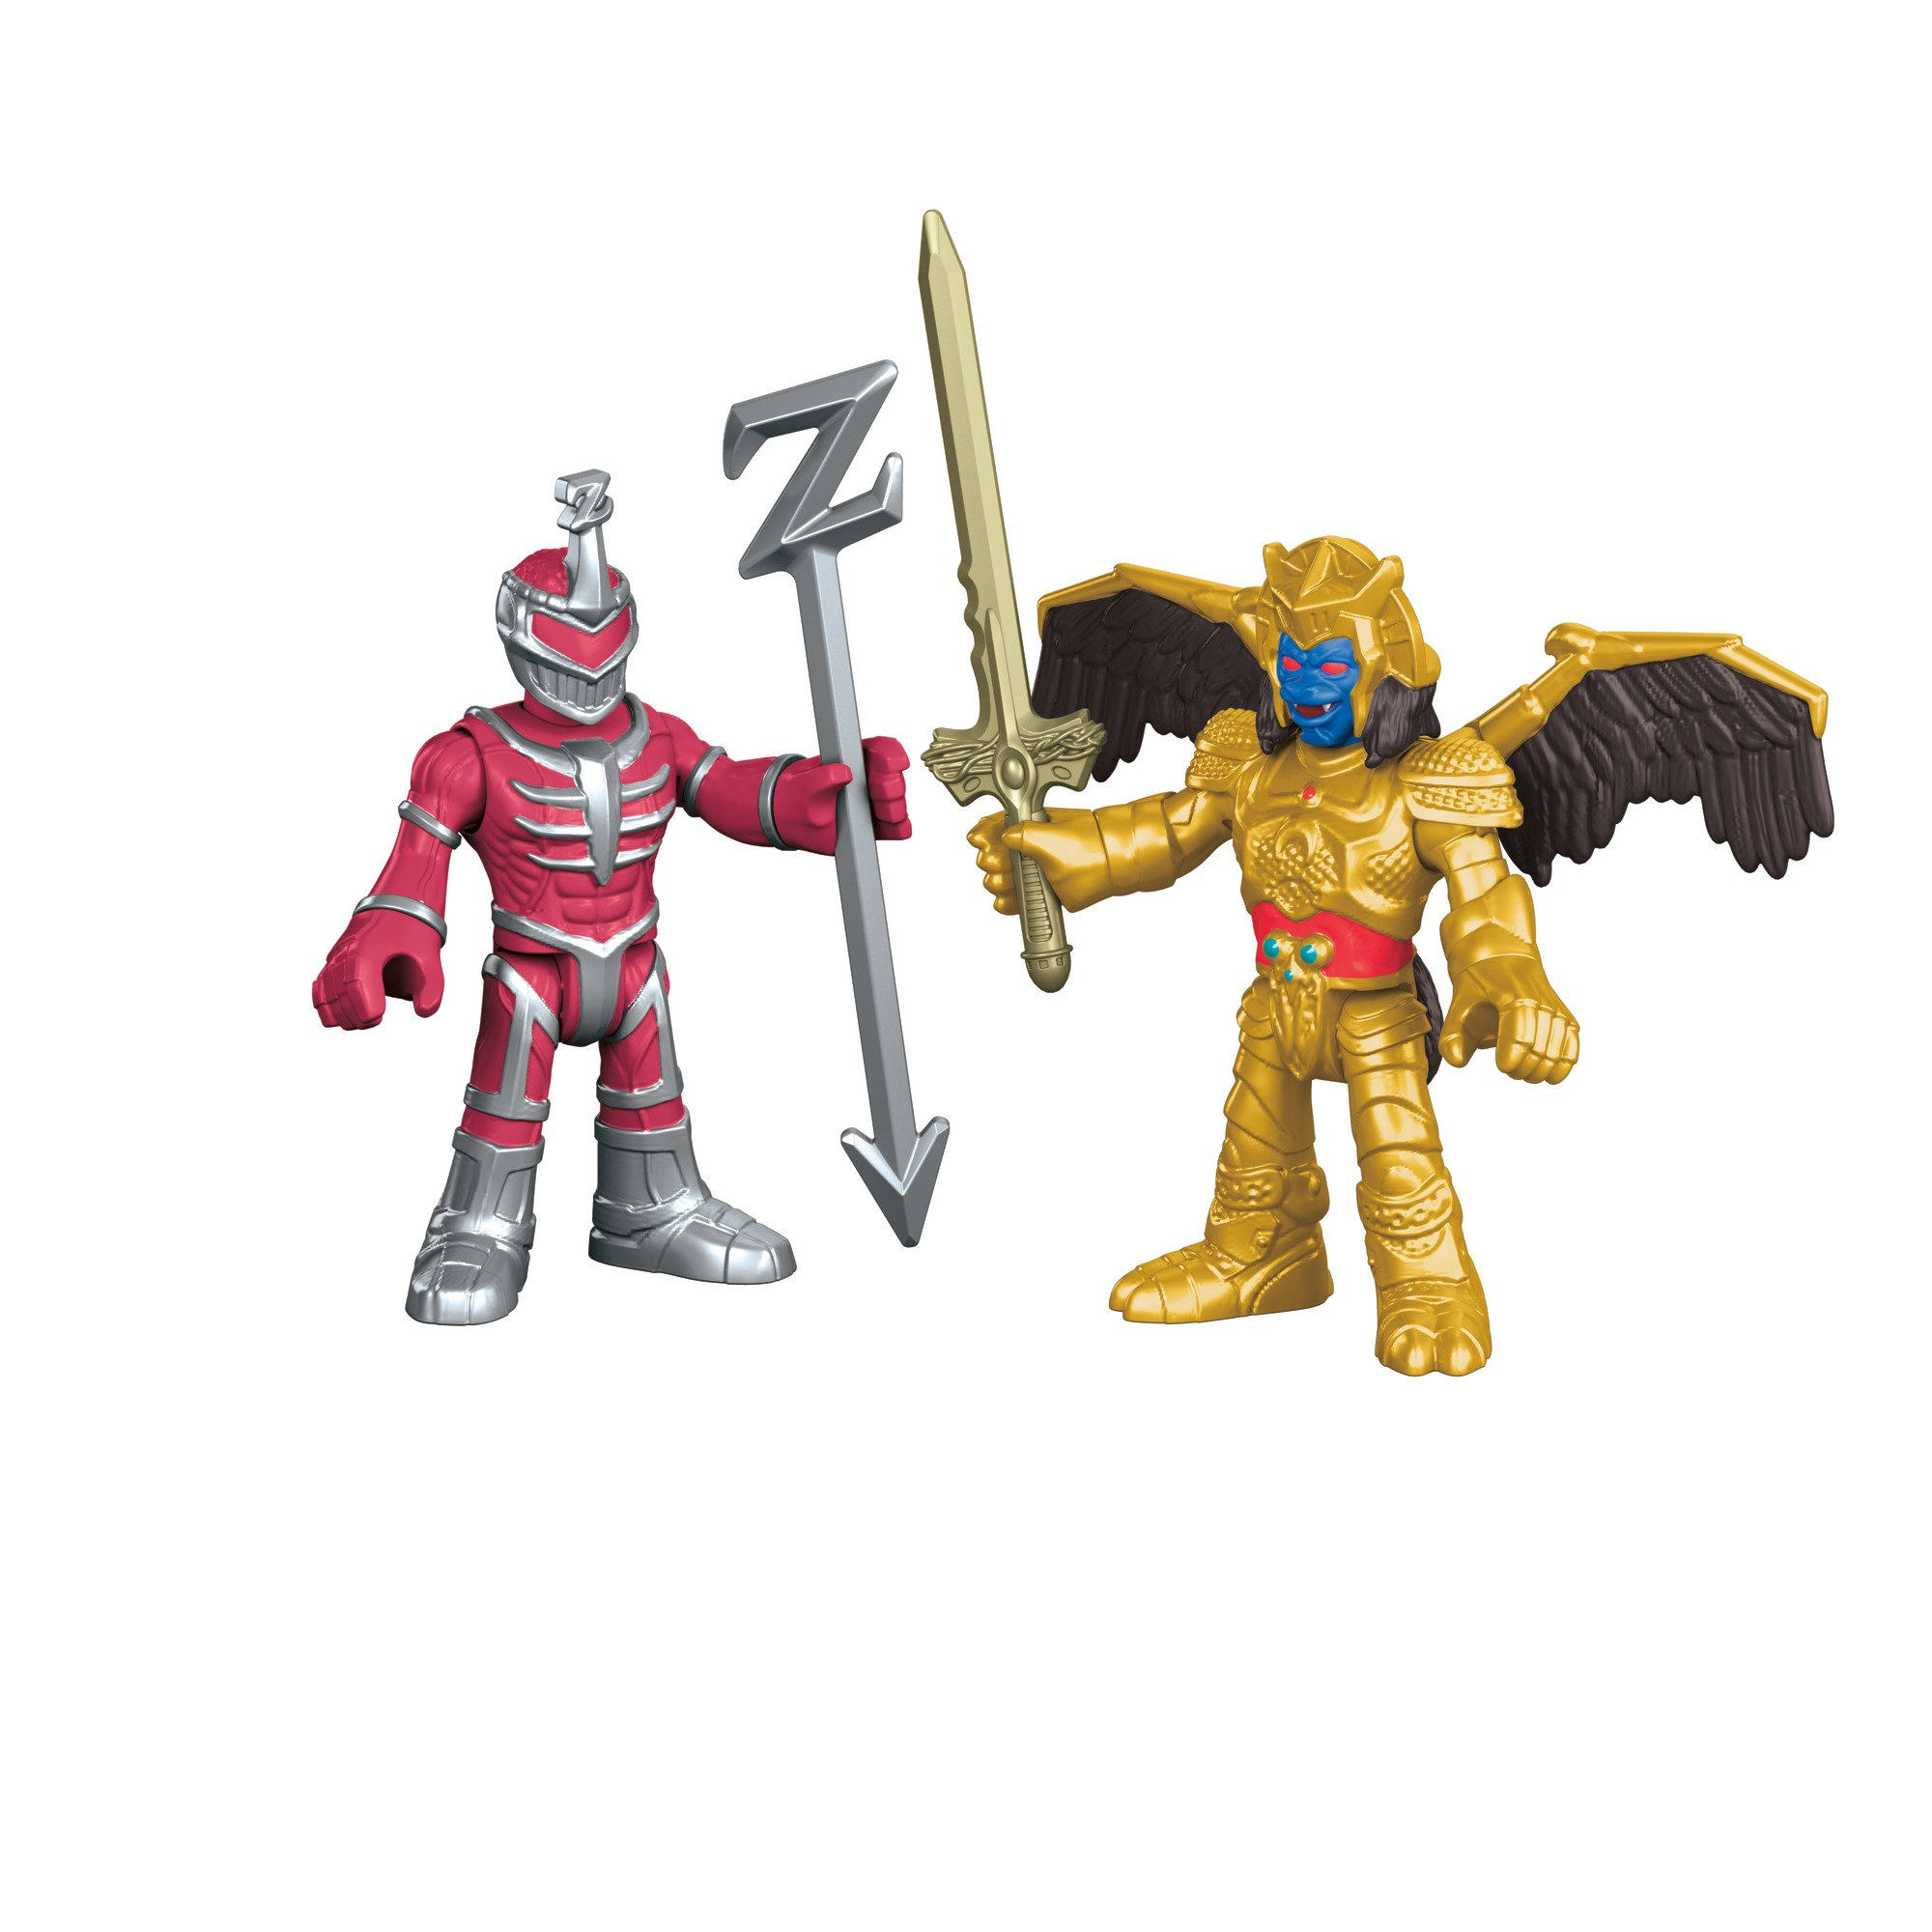 Imaginext Power Rangers Goldar and Lord Zedd